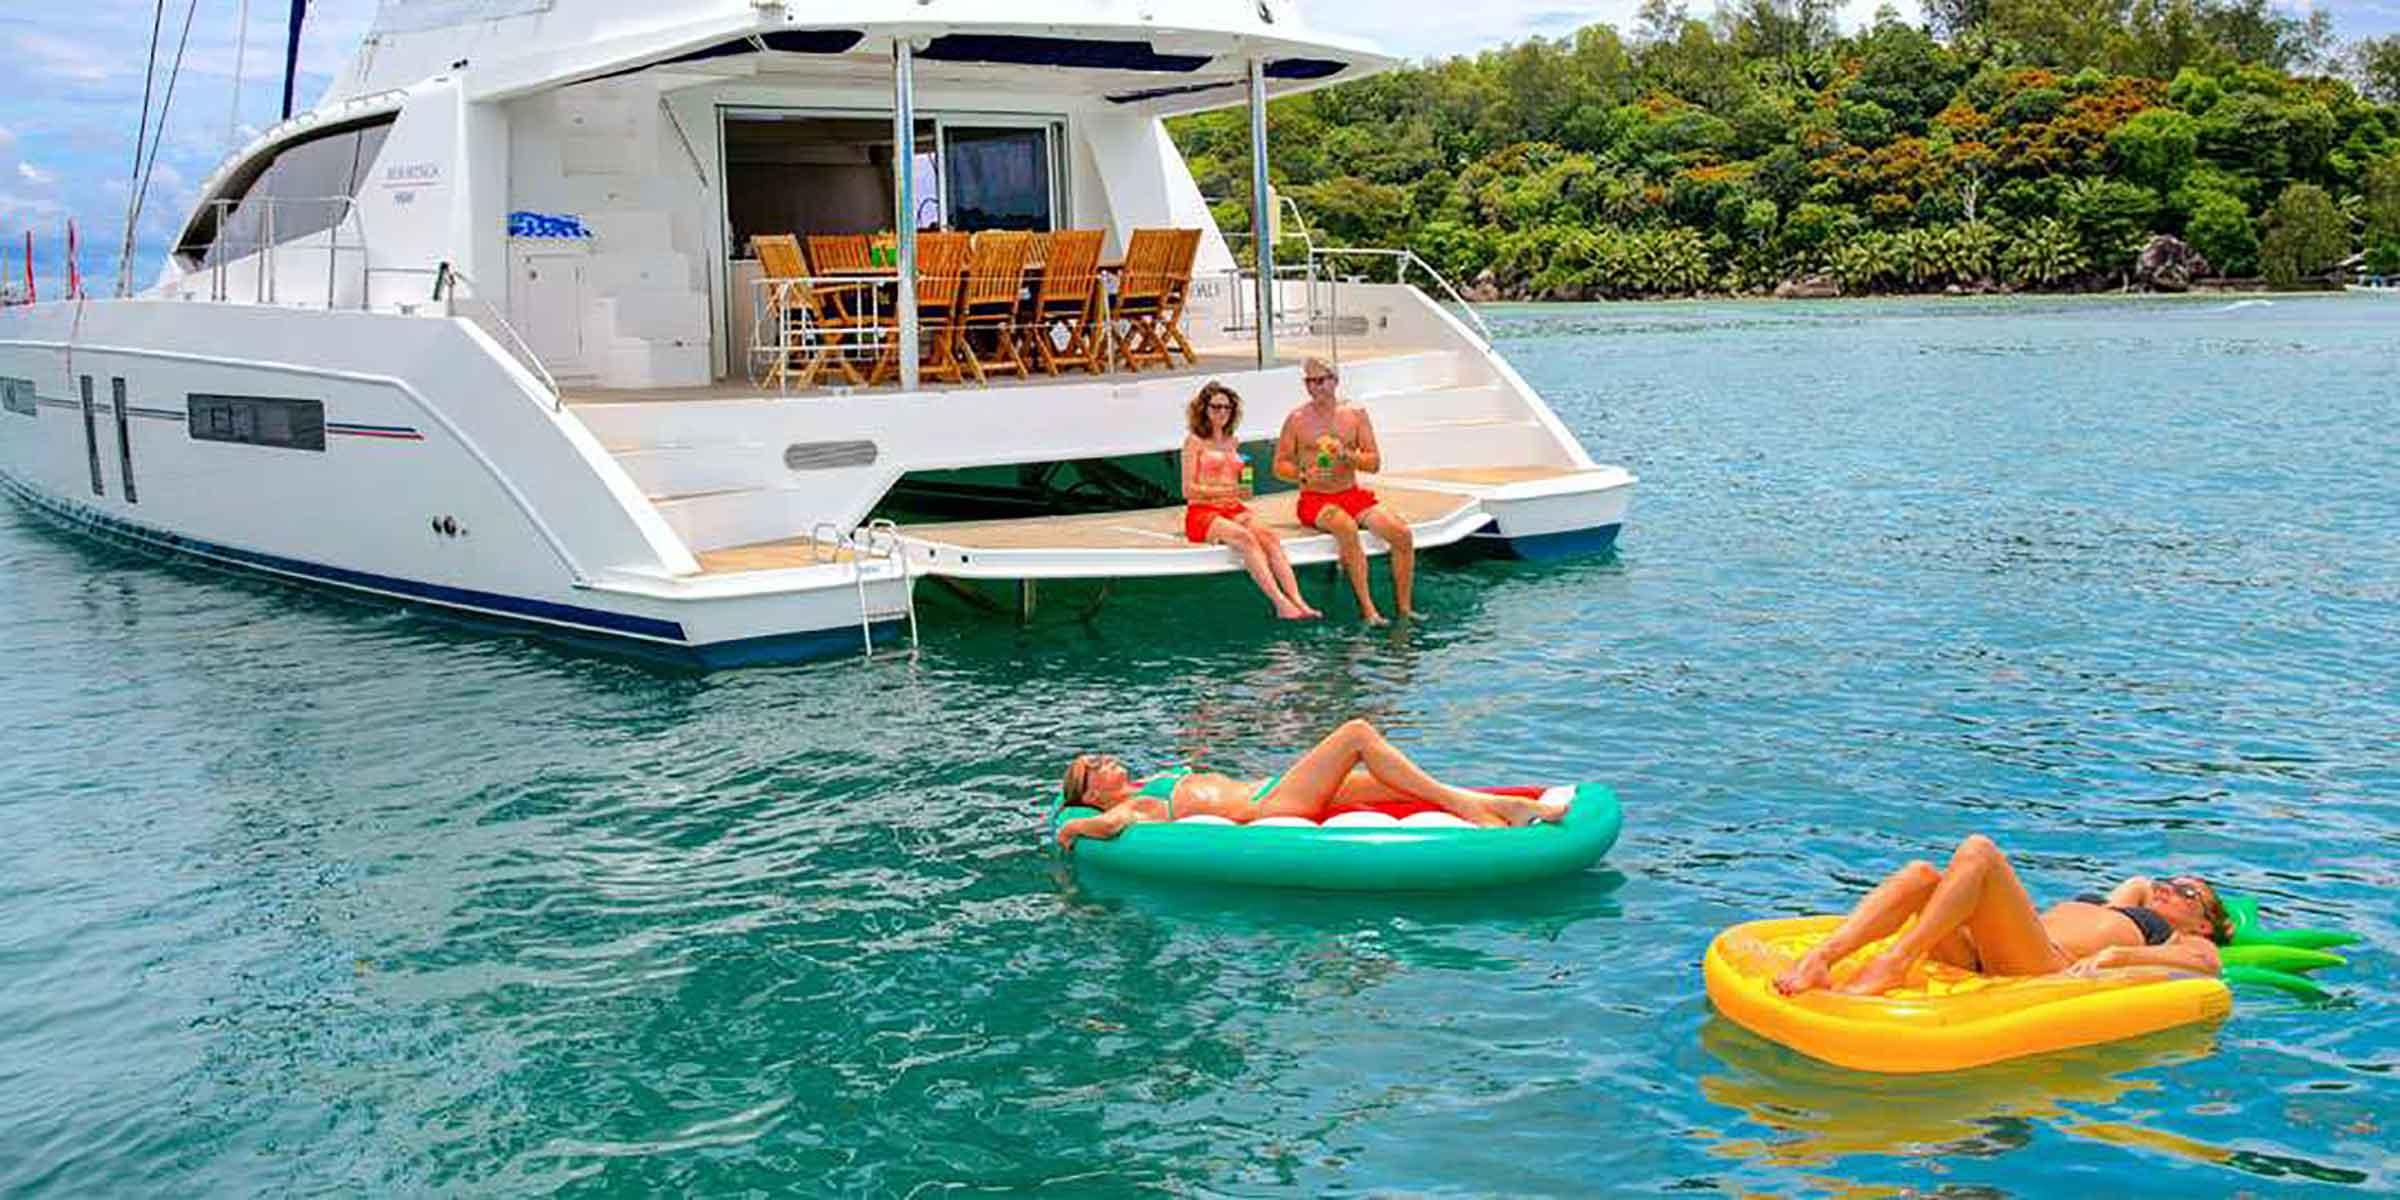 People relaxing on inflatable rafts in Caribbean